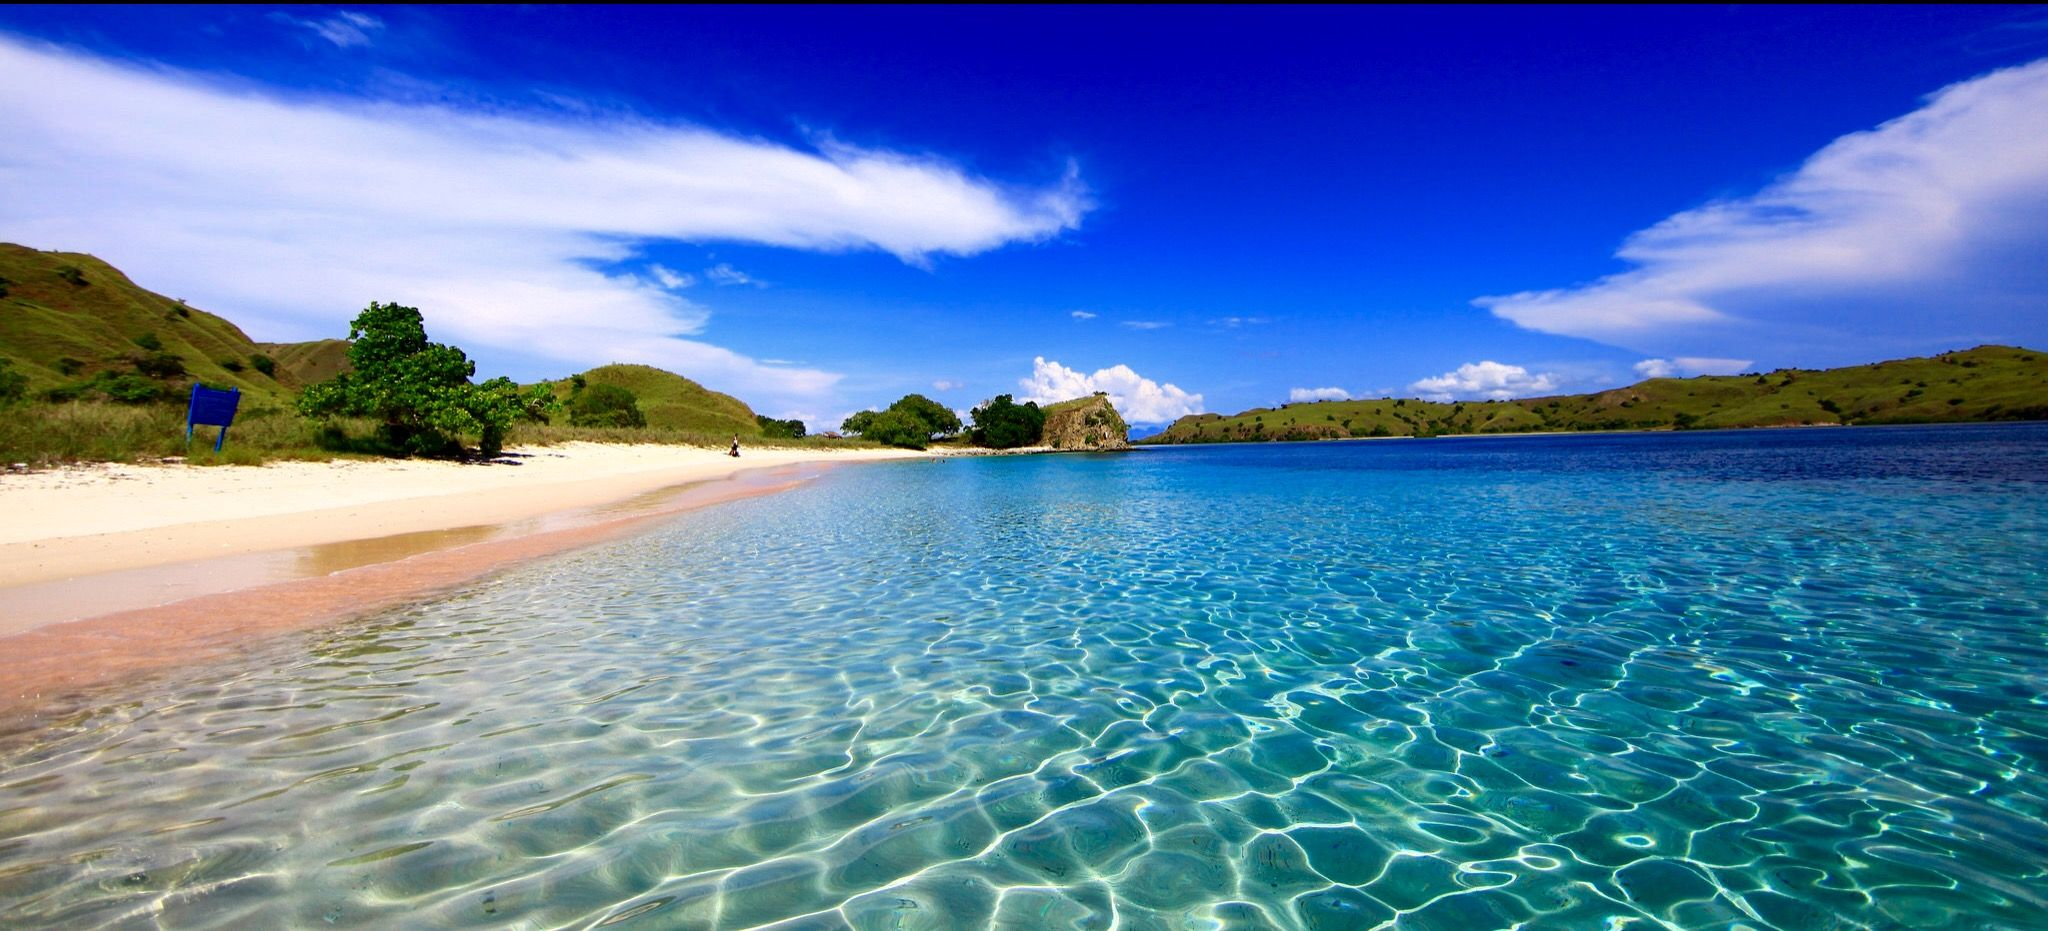 Pin by Queenyo on KOMODO ISLAND With images  Beaches